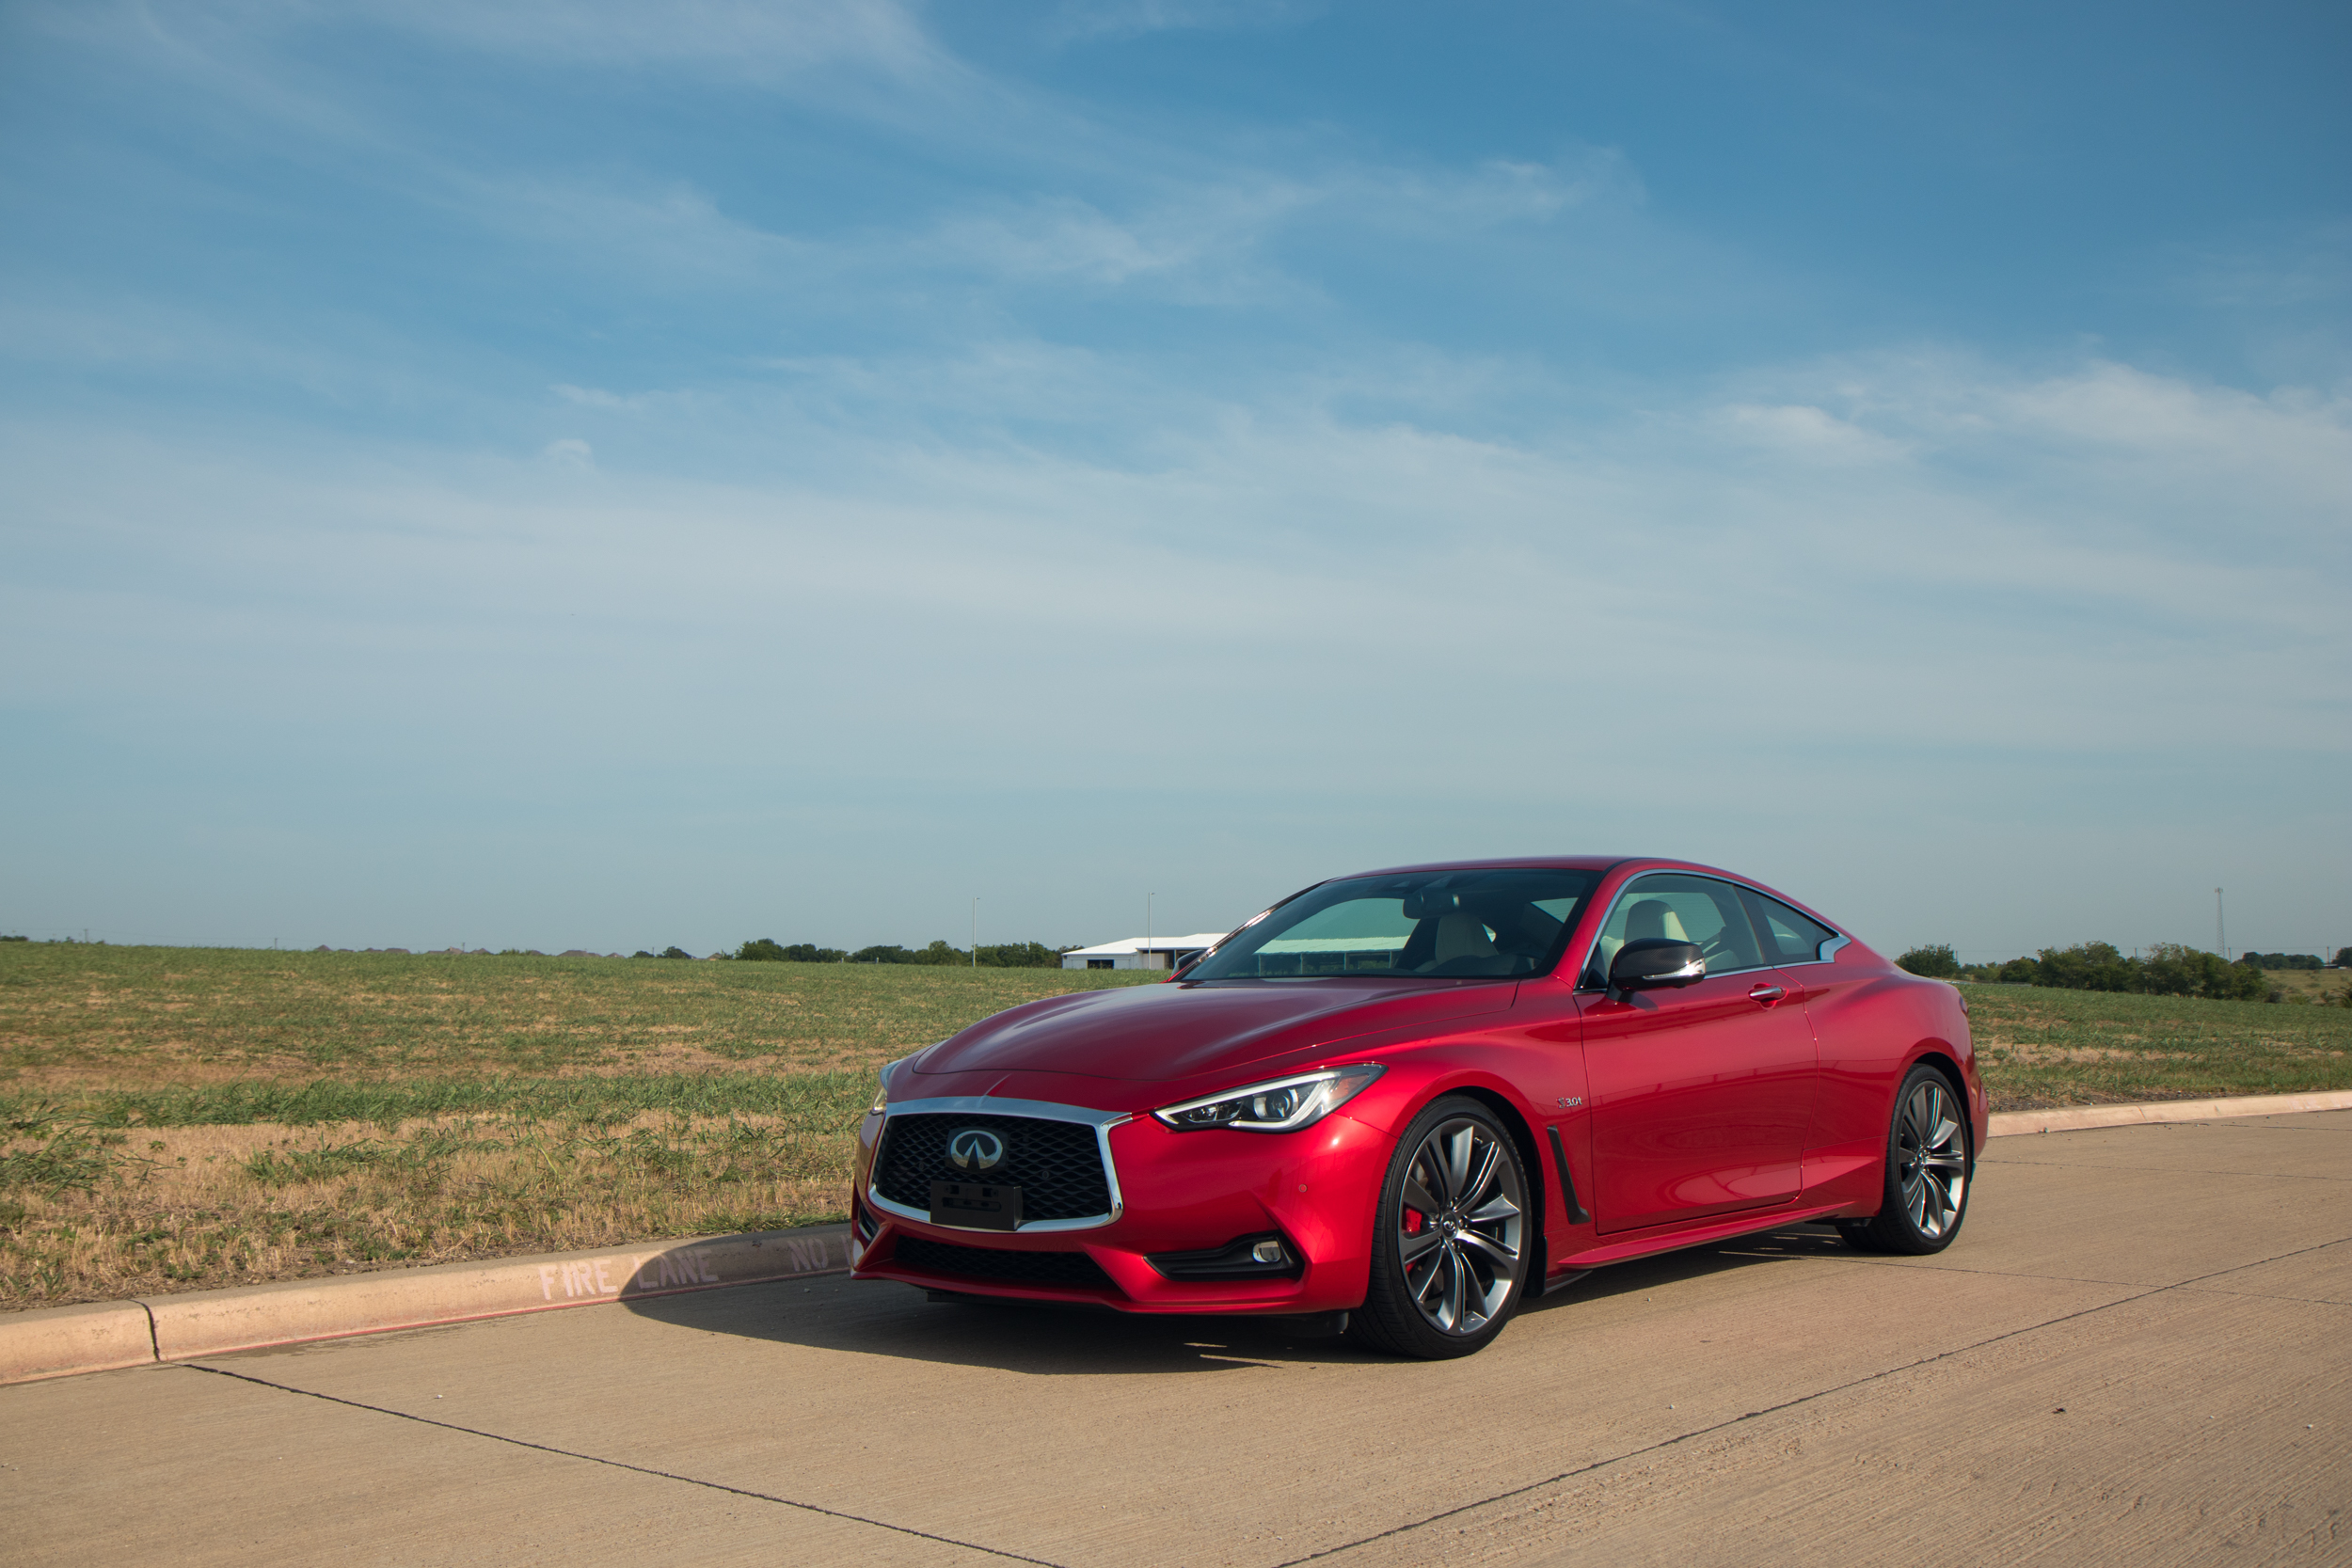 2018-Infiniti-Q60s-Red-Sport-400–txgarage—7